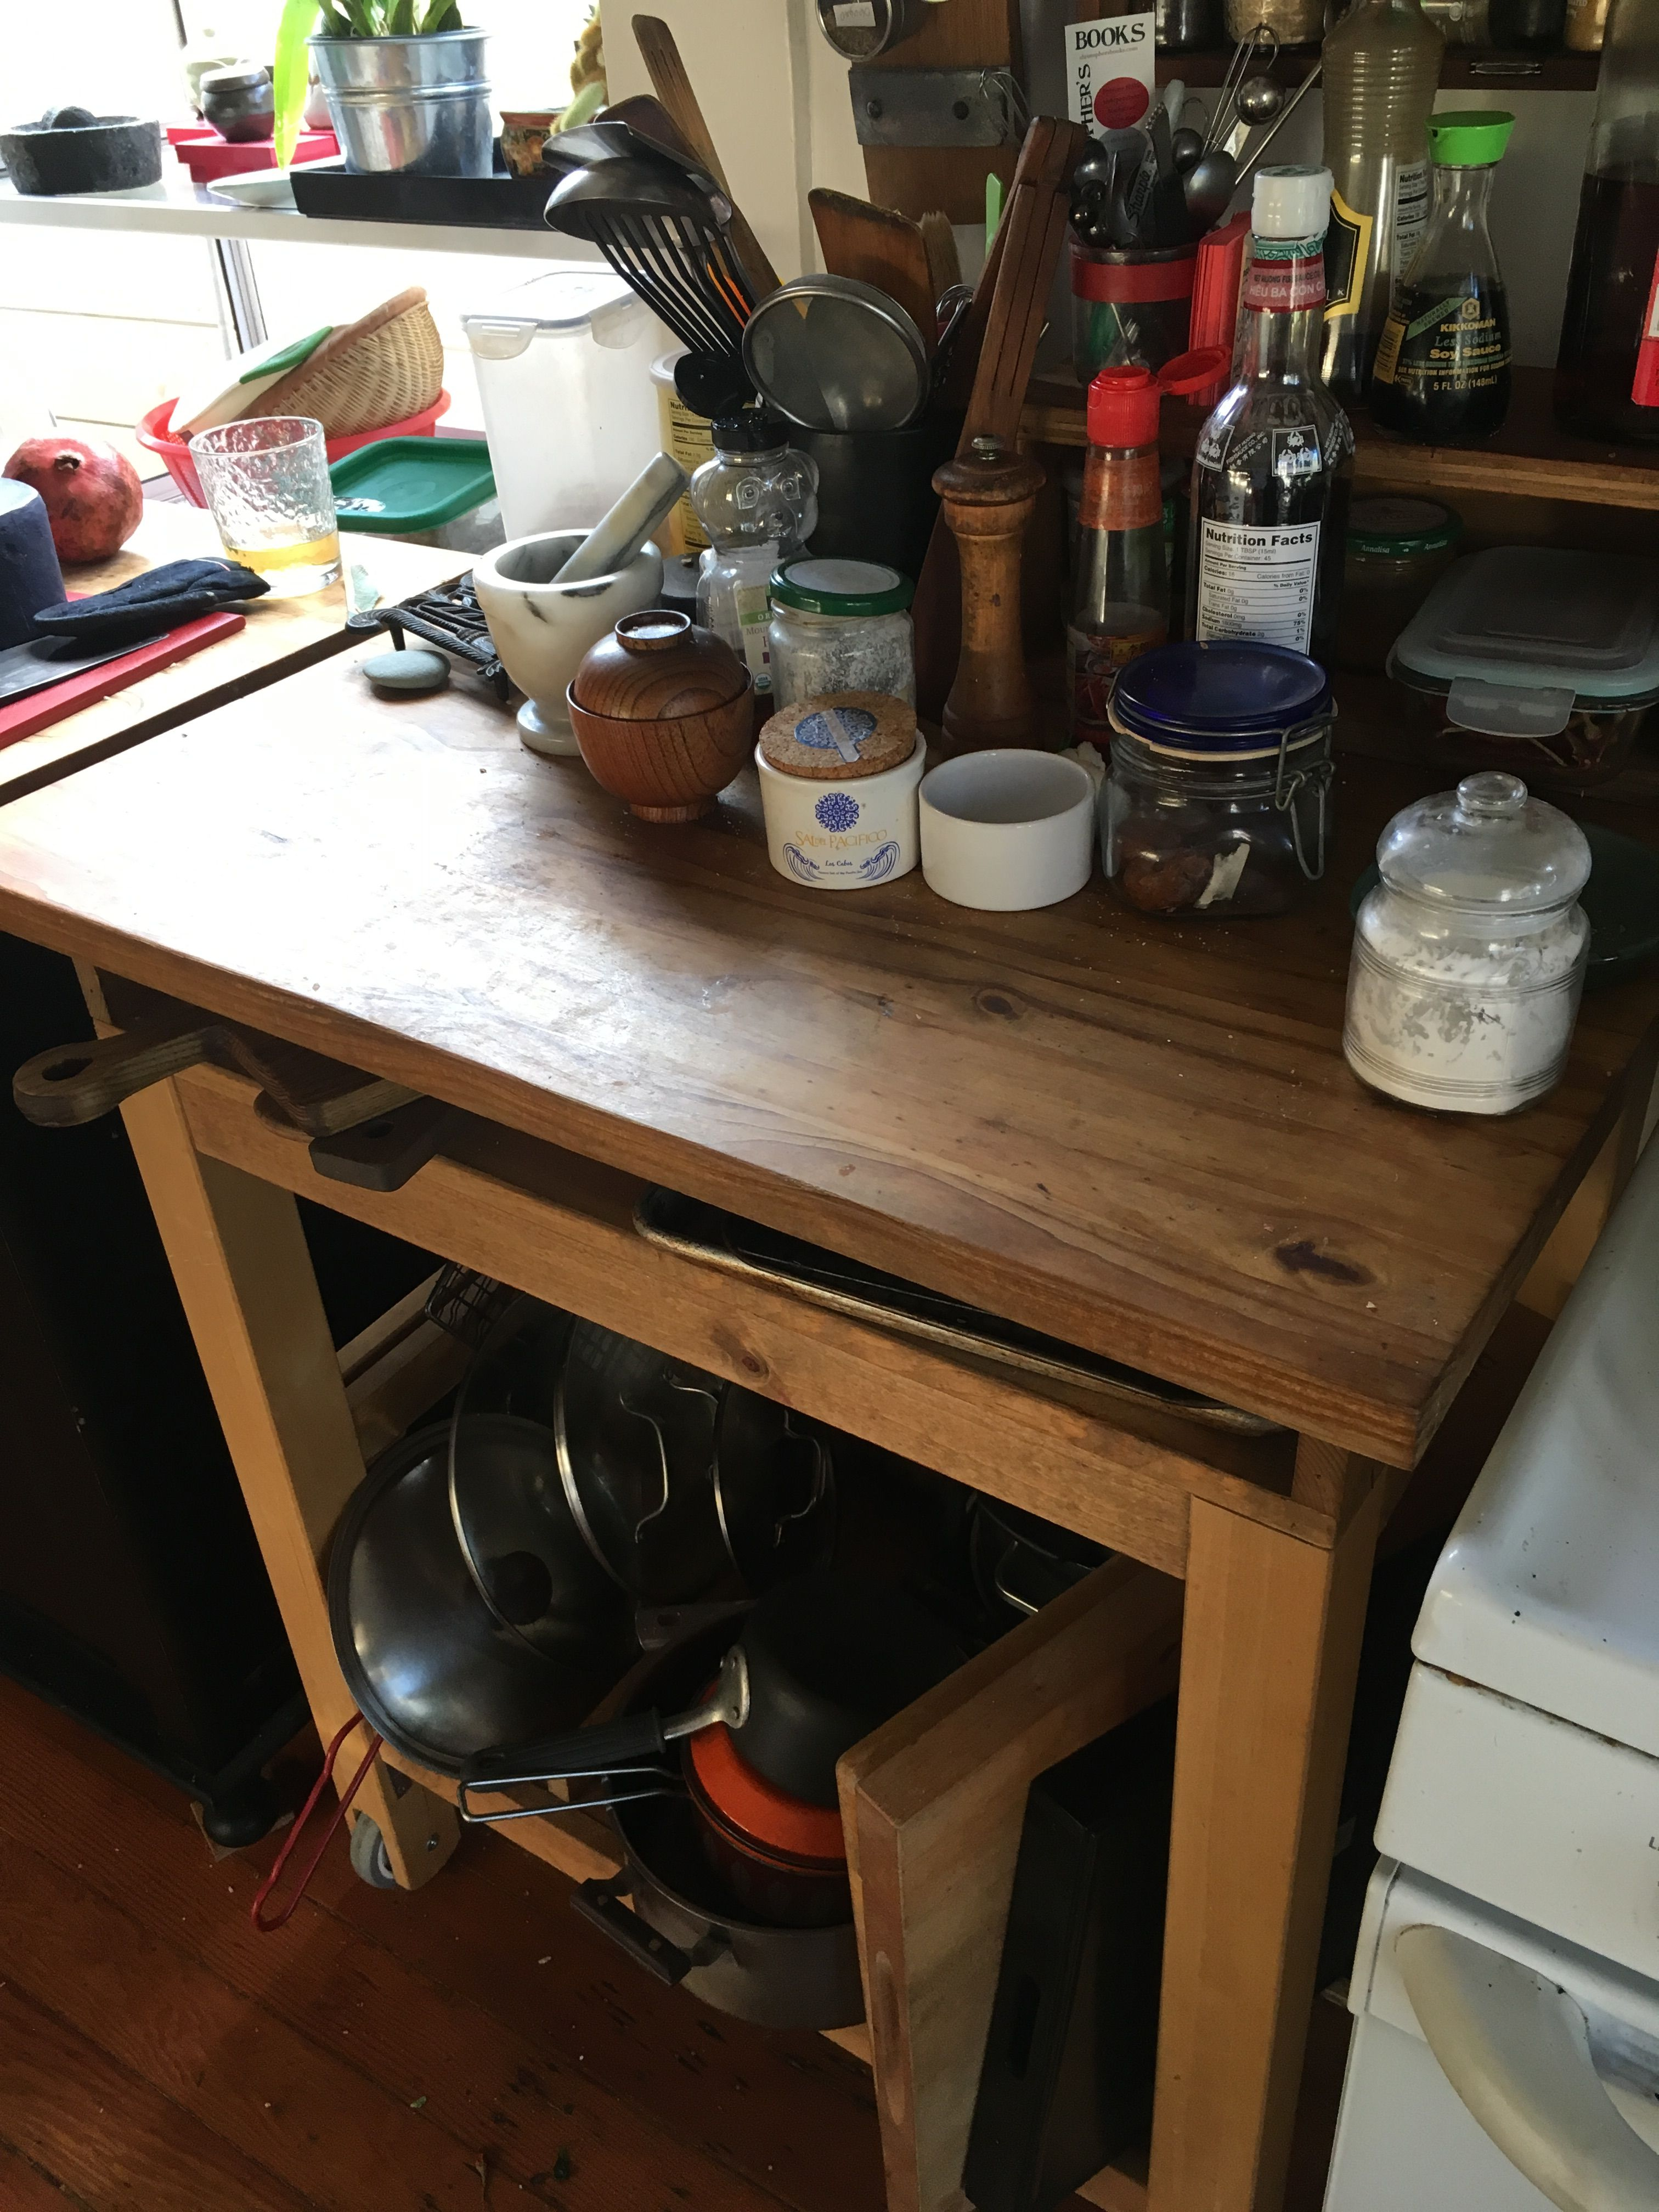 Kitchen Work Table With Storage Space Underneath Kitchen Work